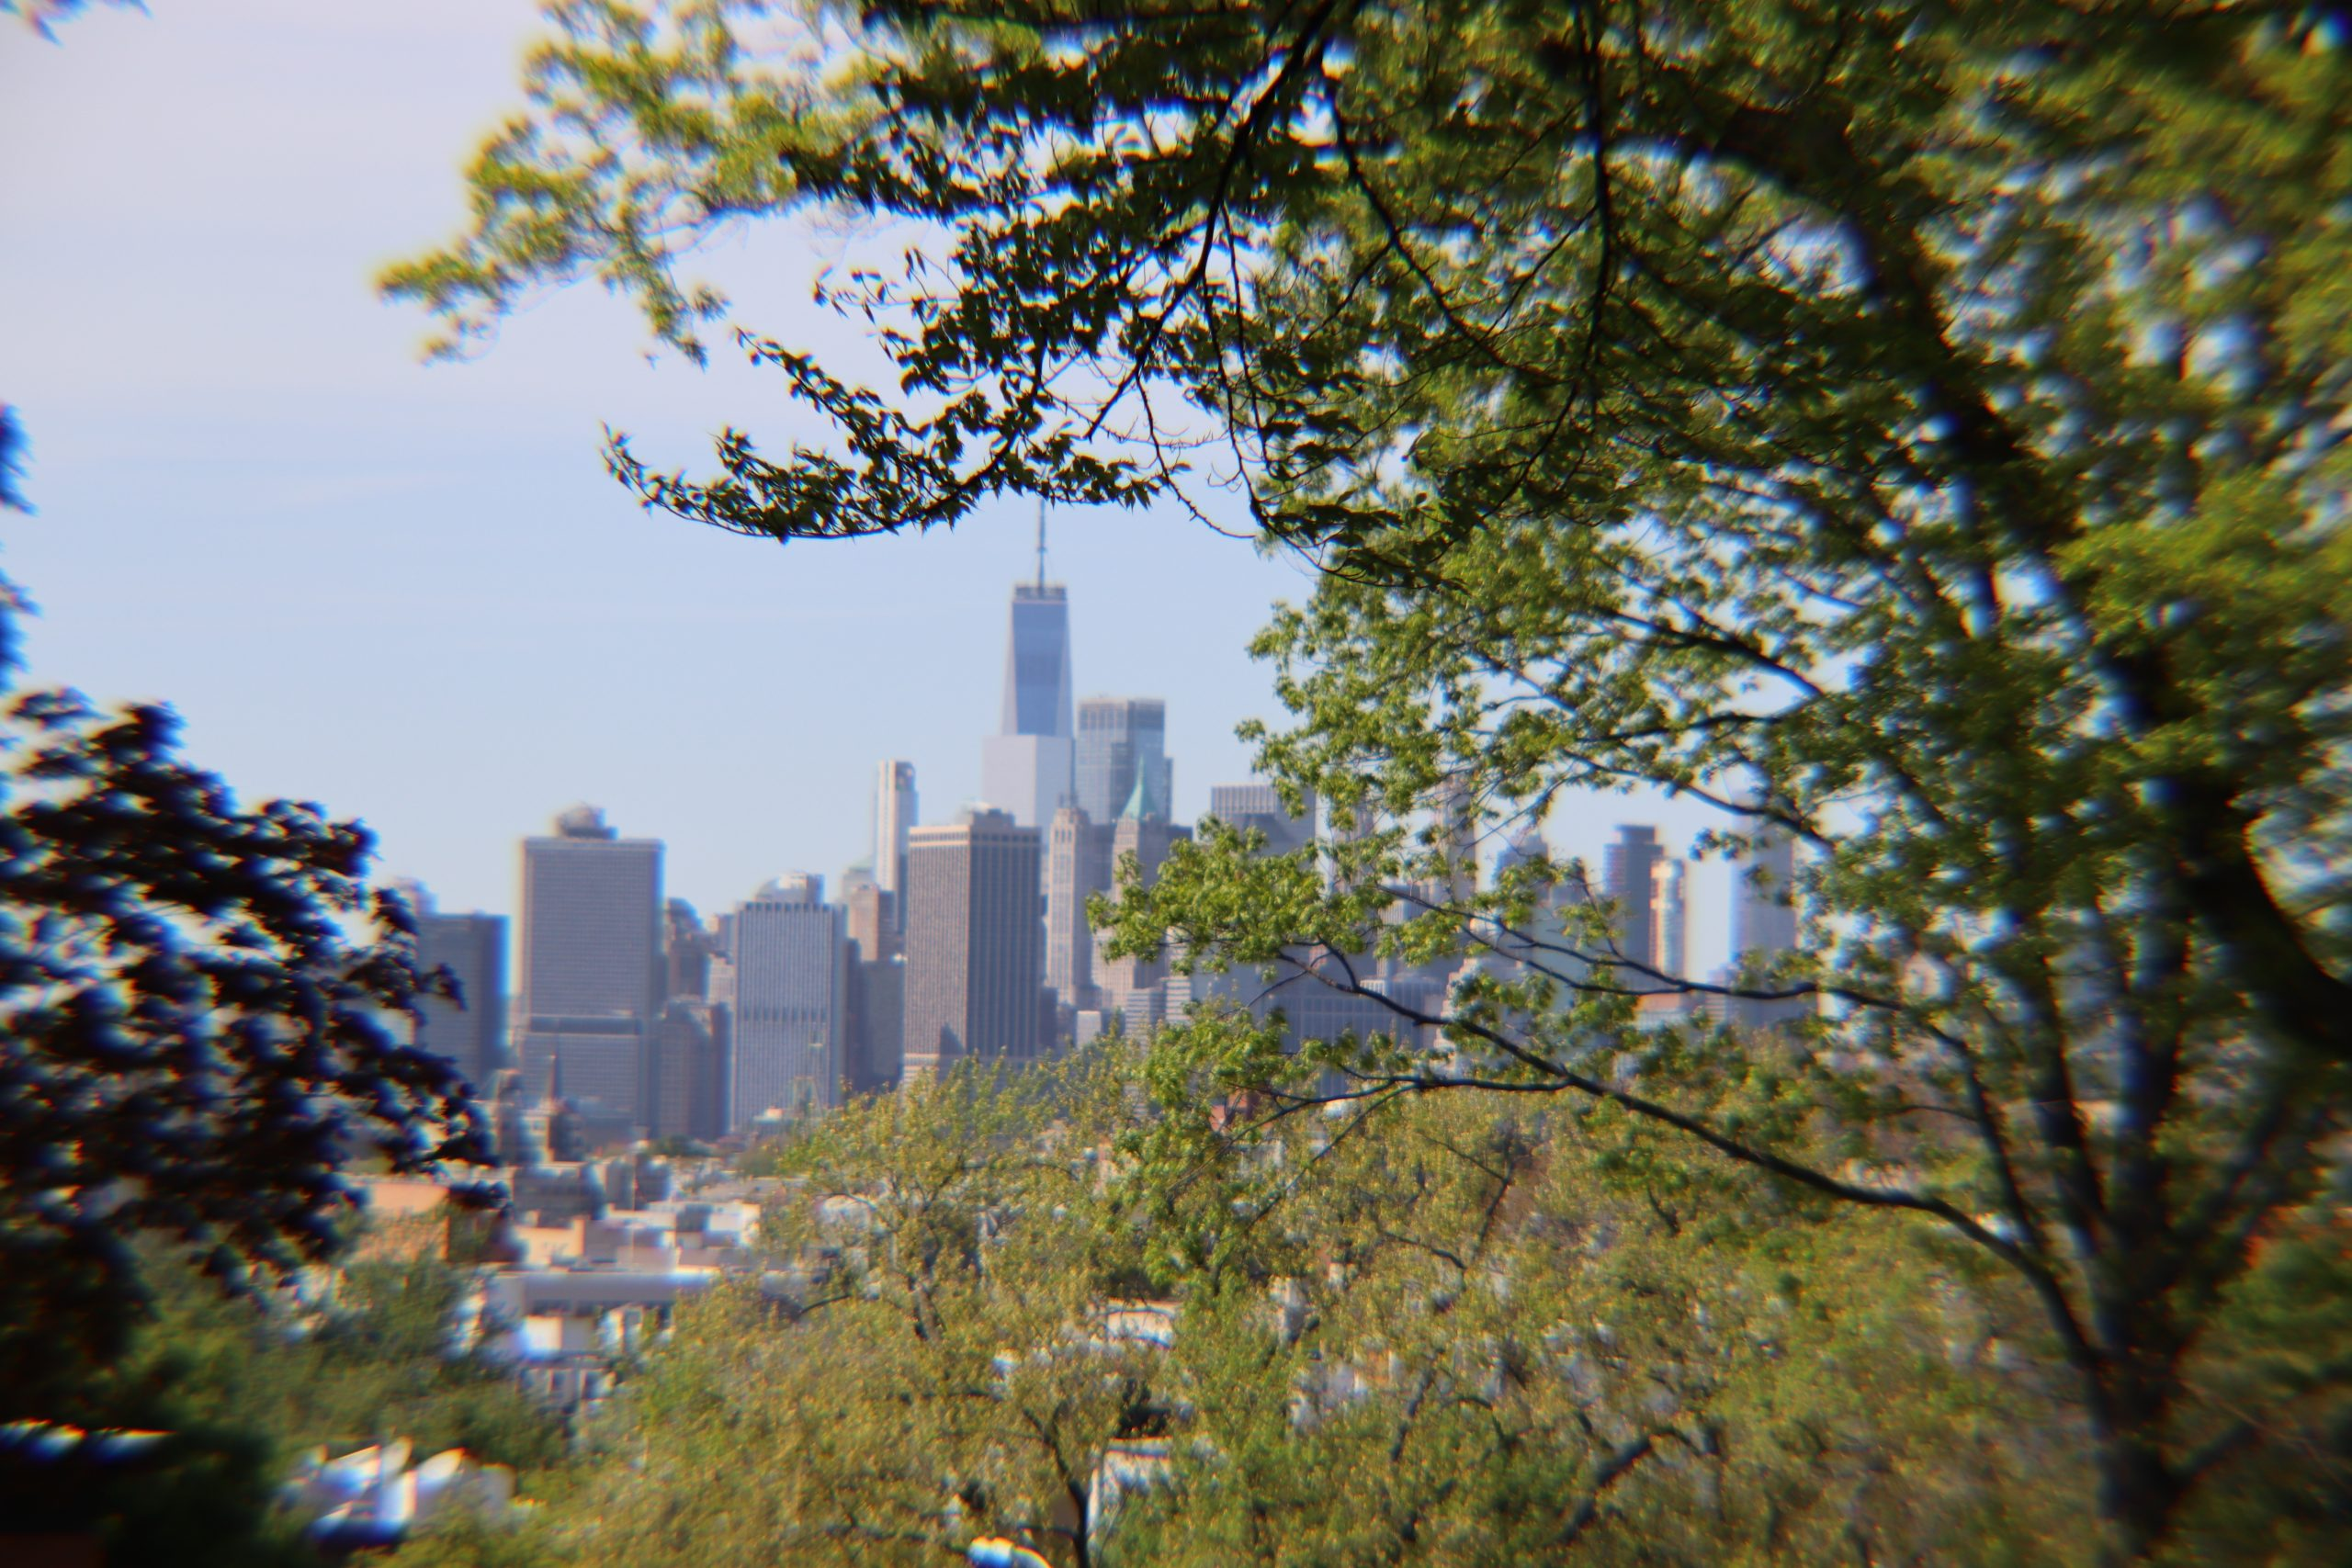 View of Manhattan from Green-Wood Cemetery using a 55MM lens length with a 2x telephoto adapter. You can see how the sides are blurry. I didn't feel the magnification was worth it.